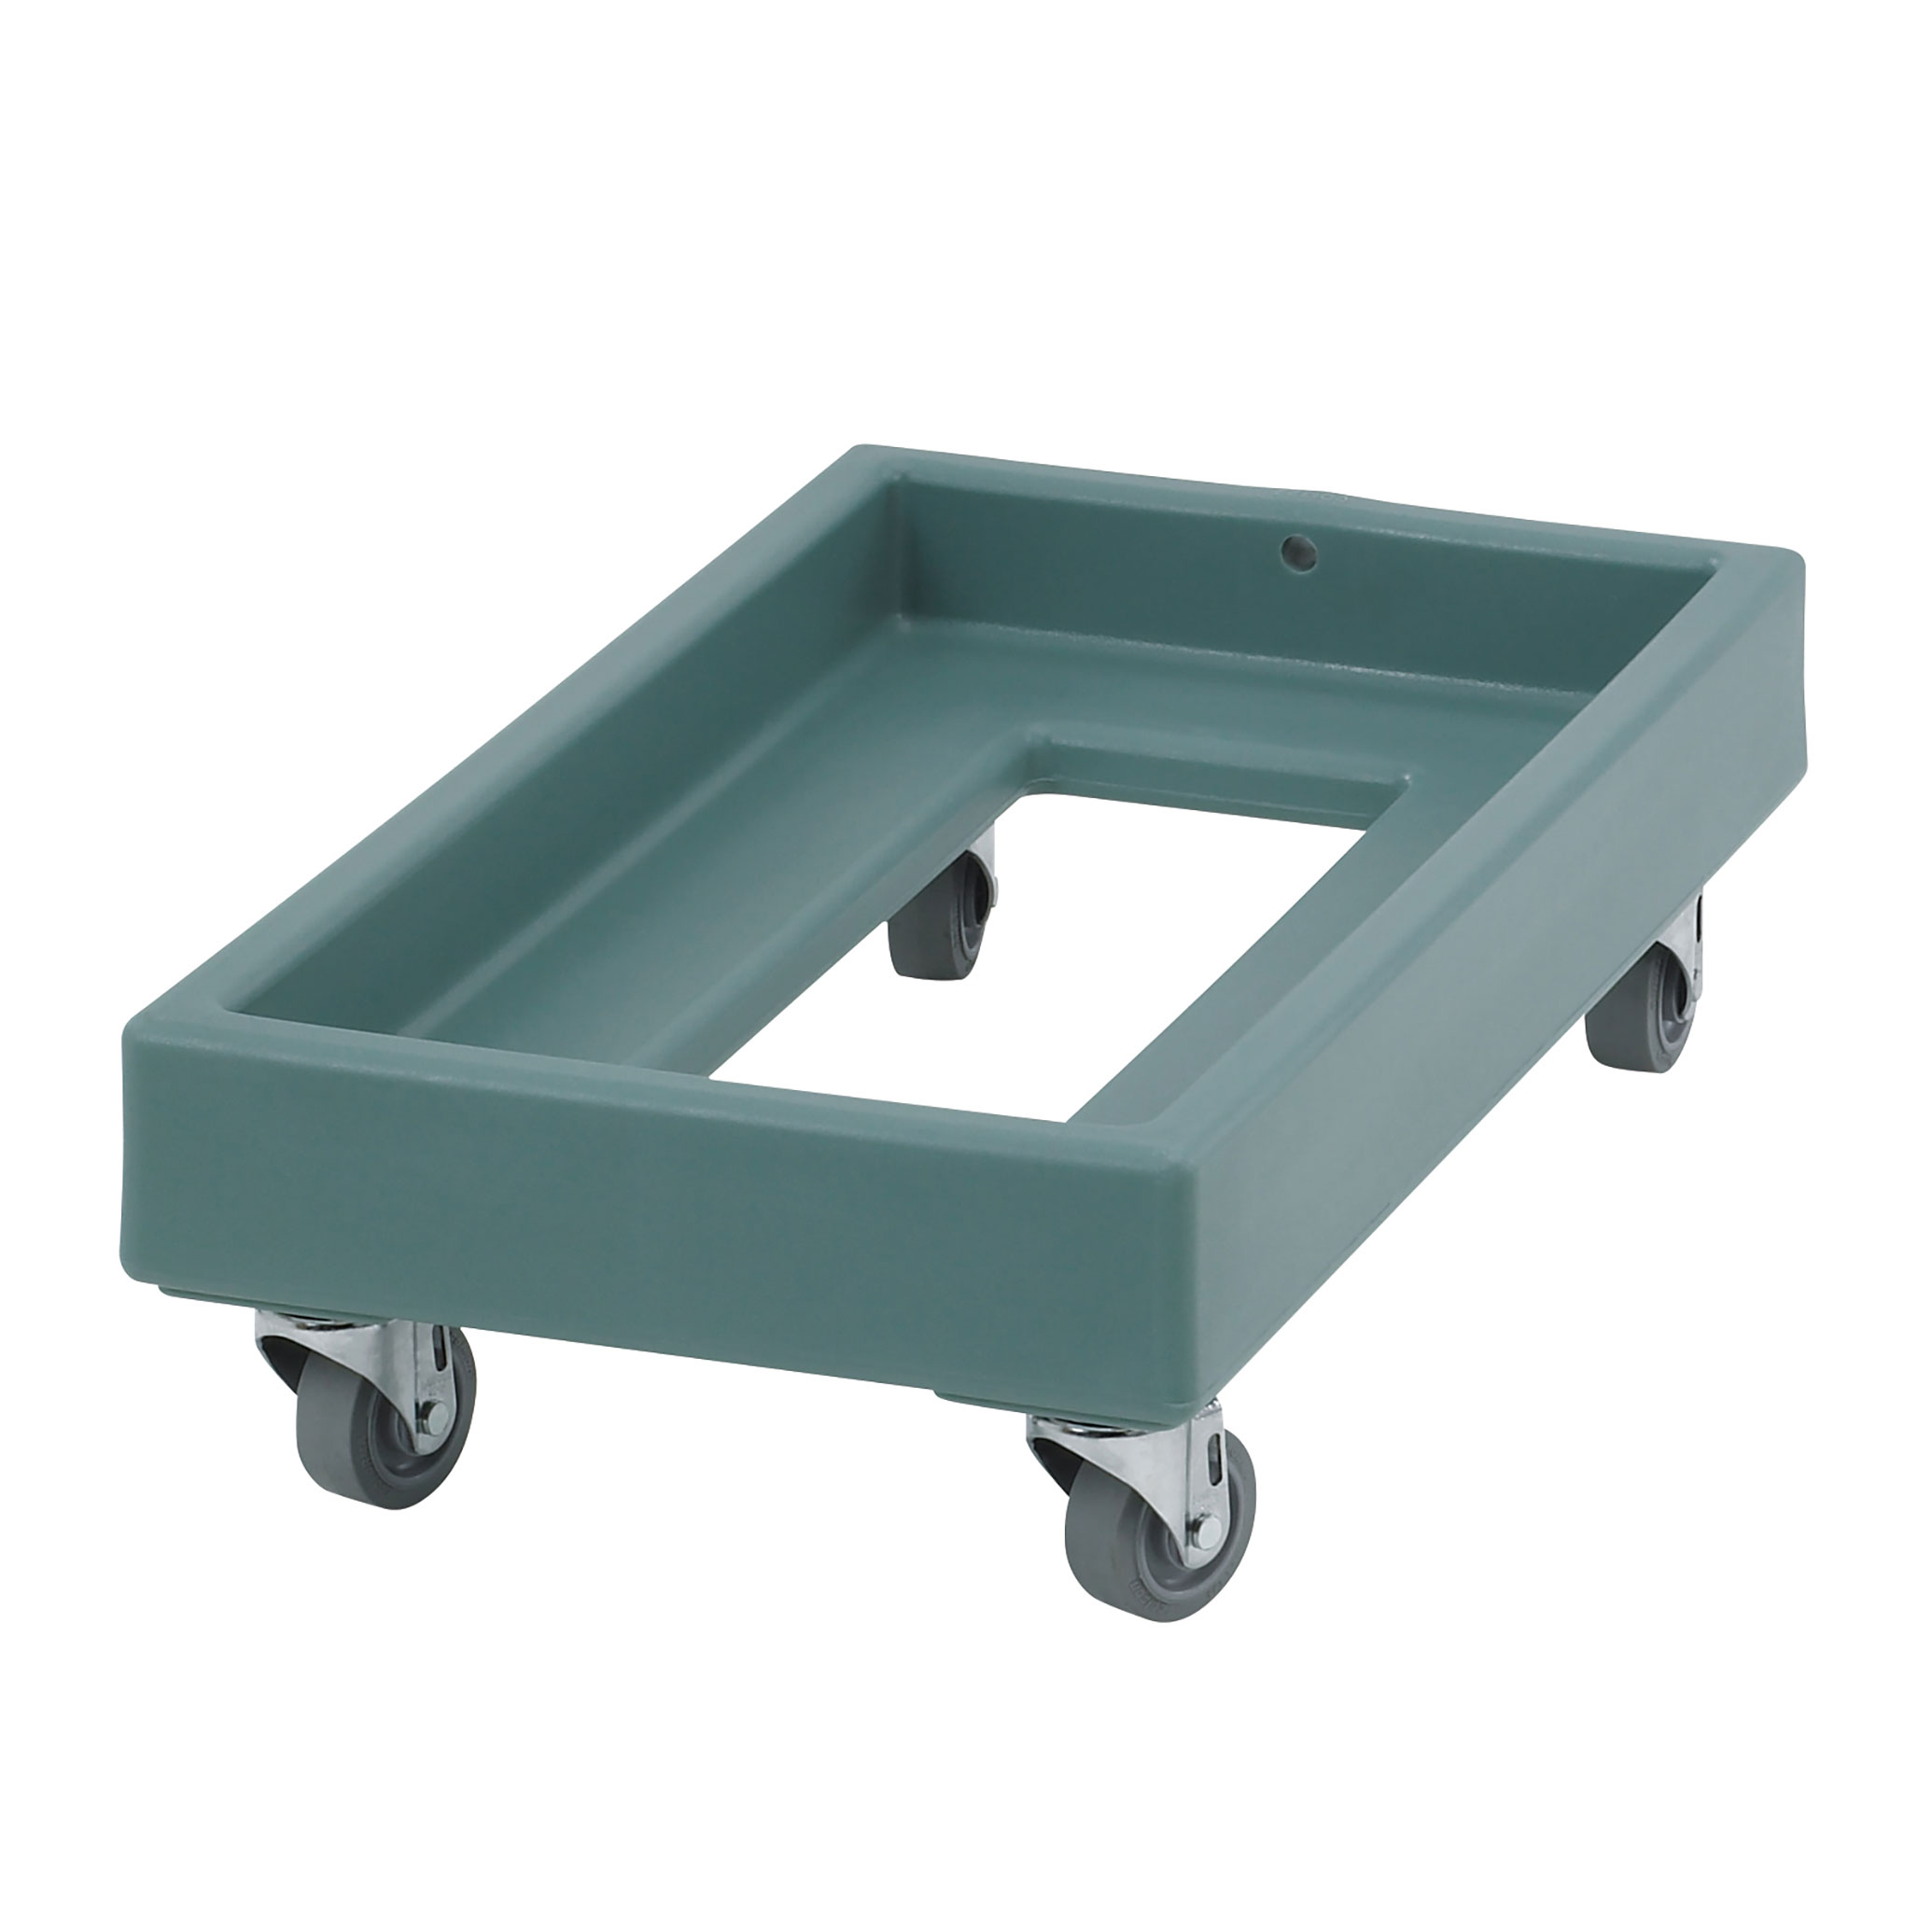 Cambro CD1327401 food carrier dolly